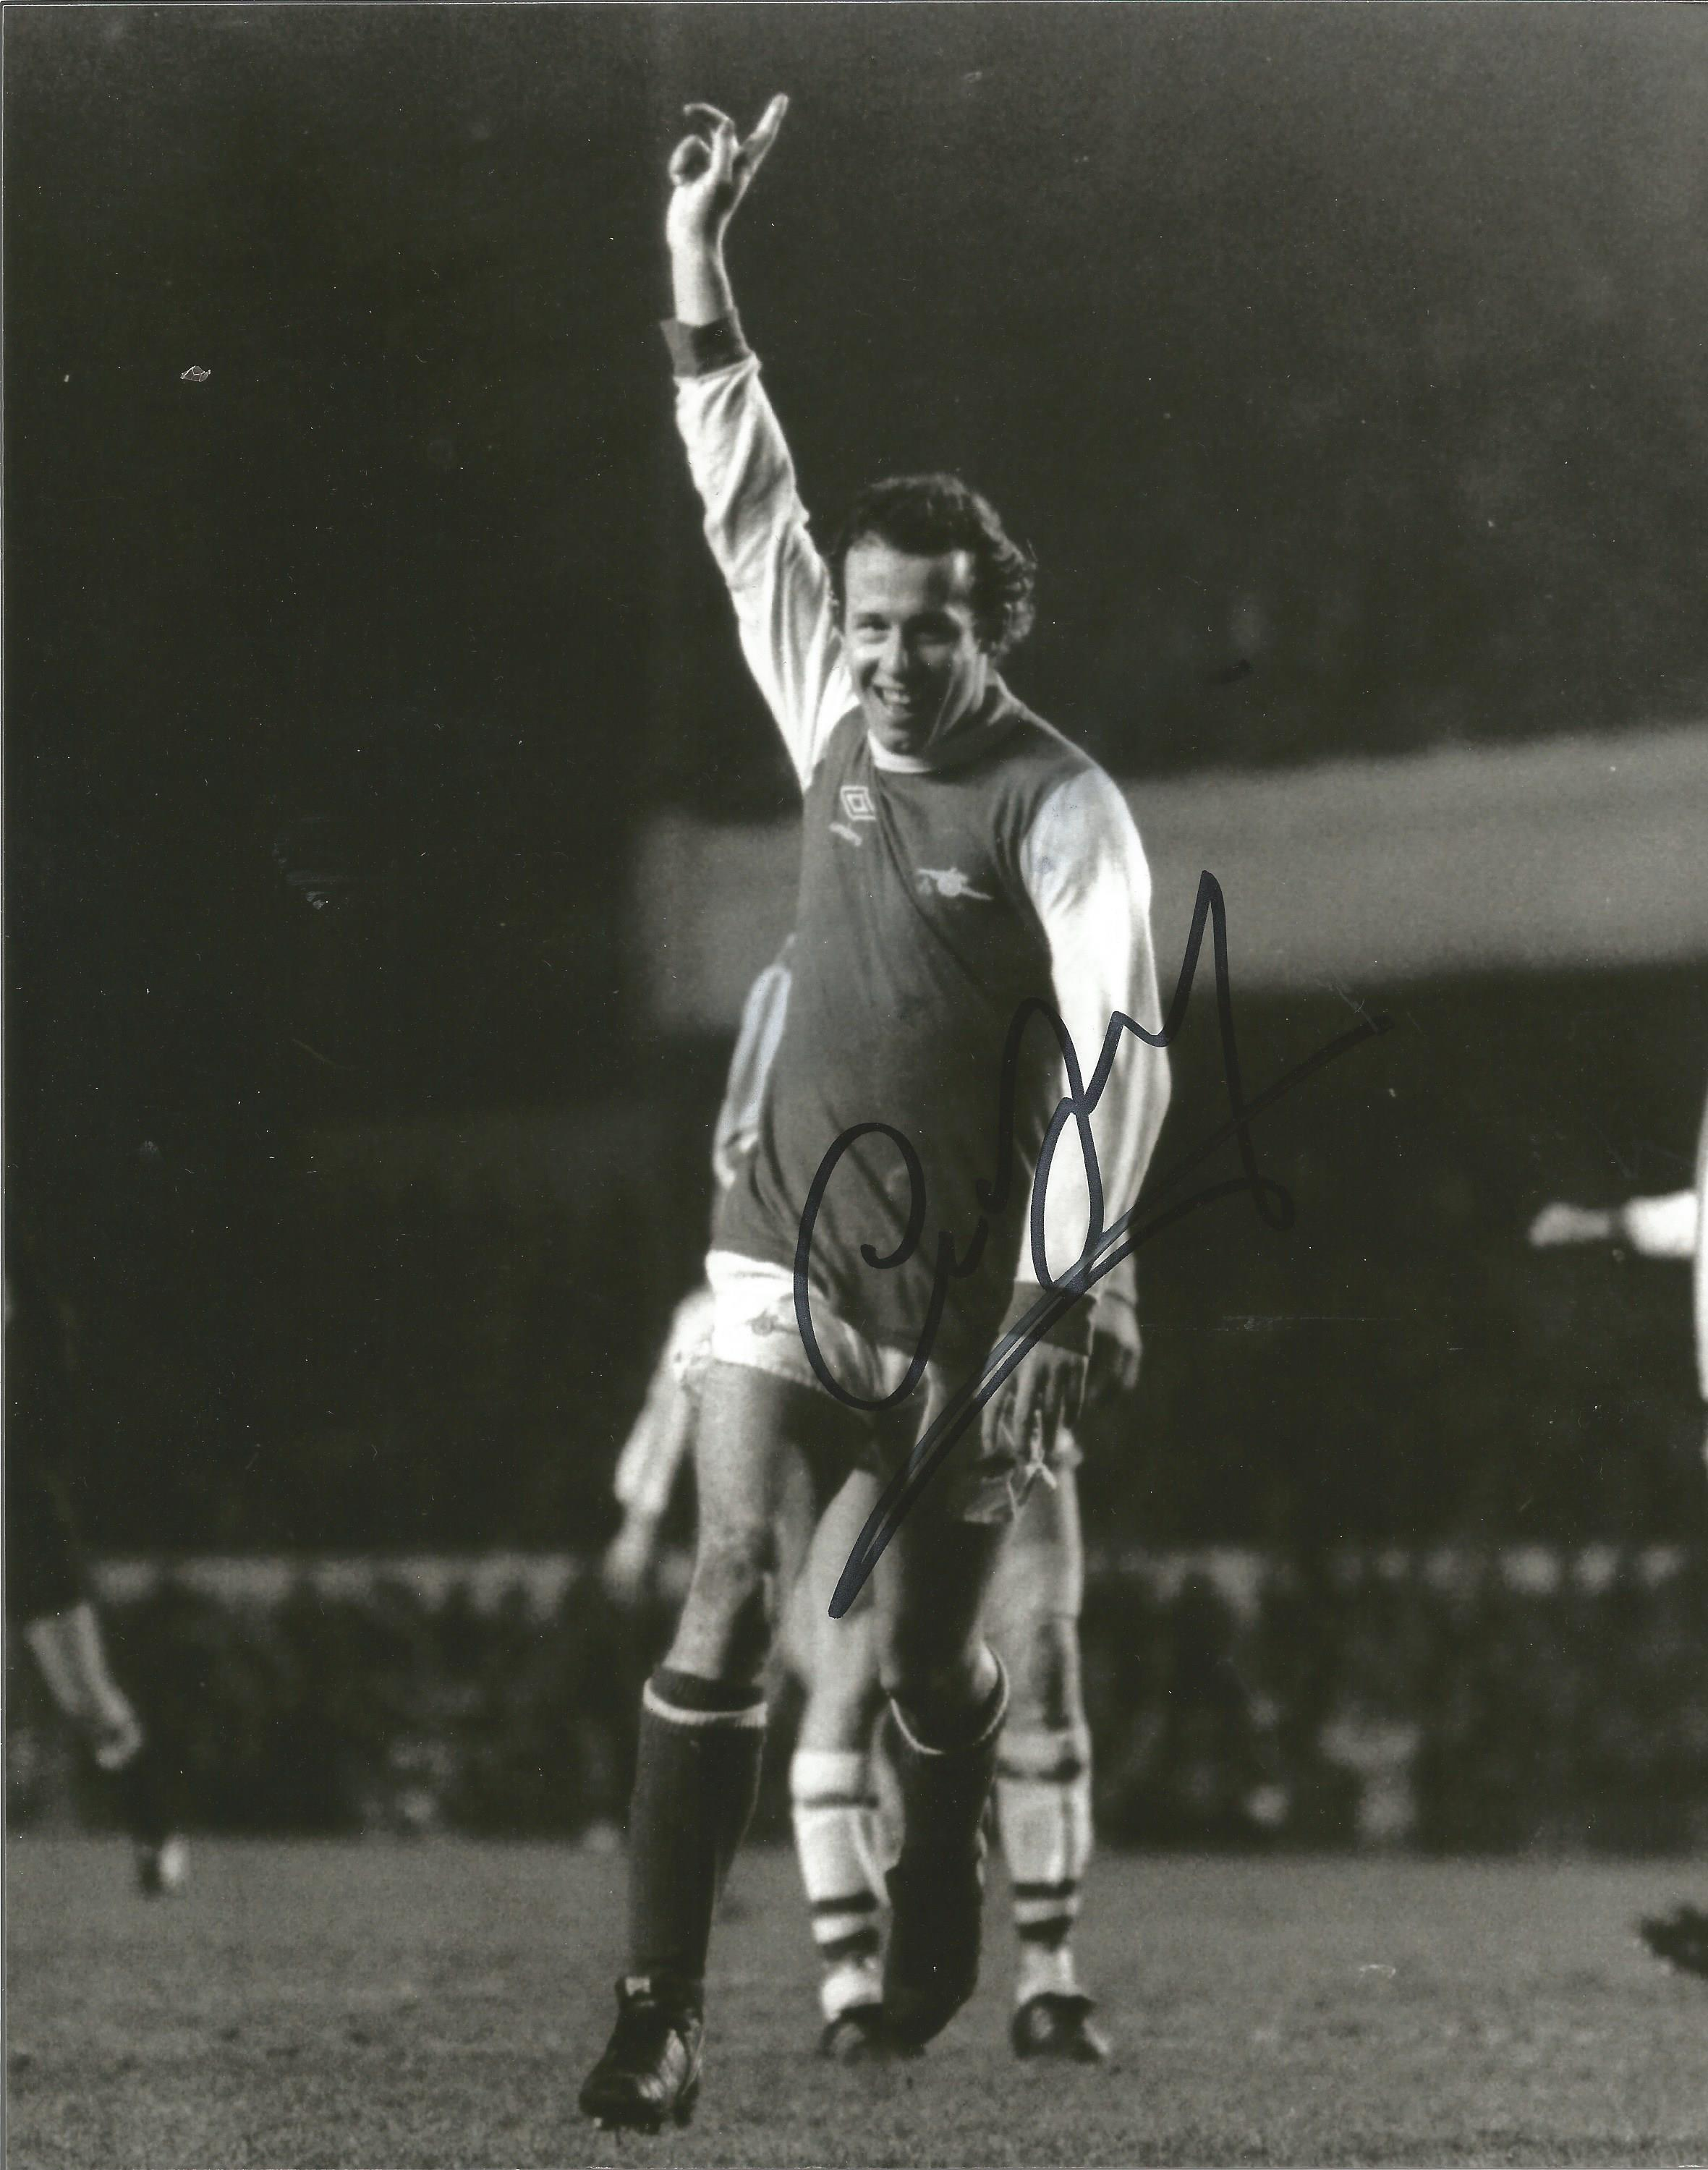 Football, Liam Brady signed 10x8 black and white photograph taken as he celebrates playing for